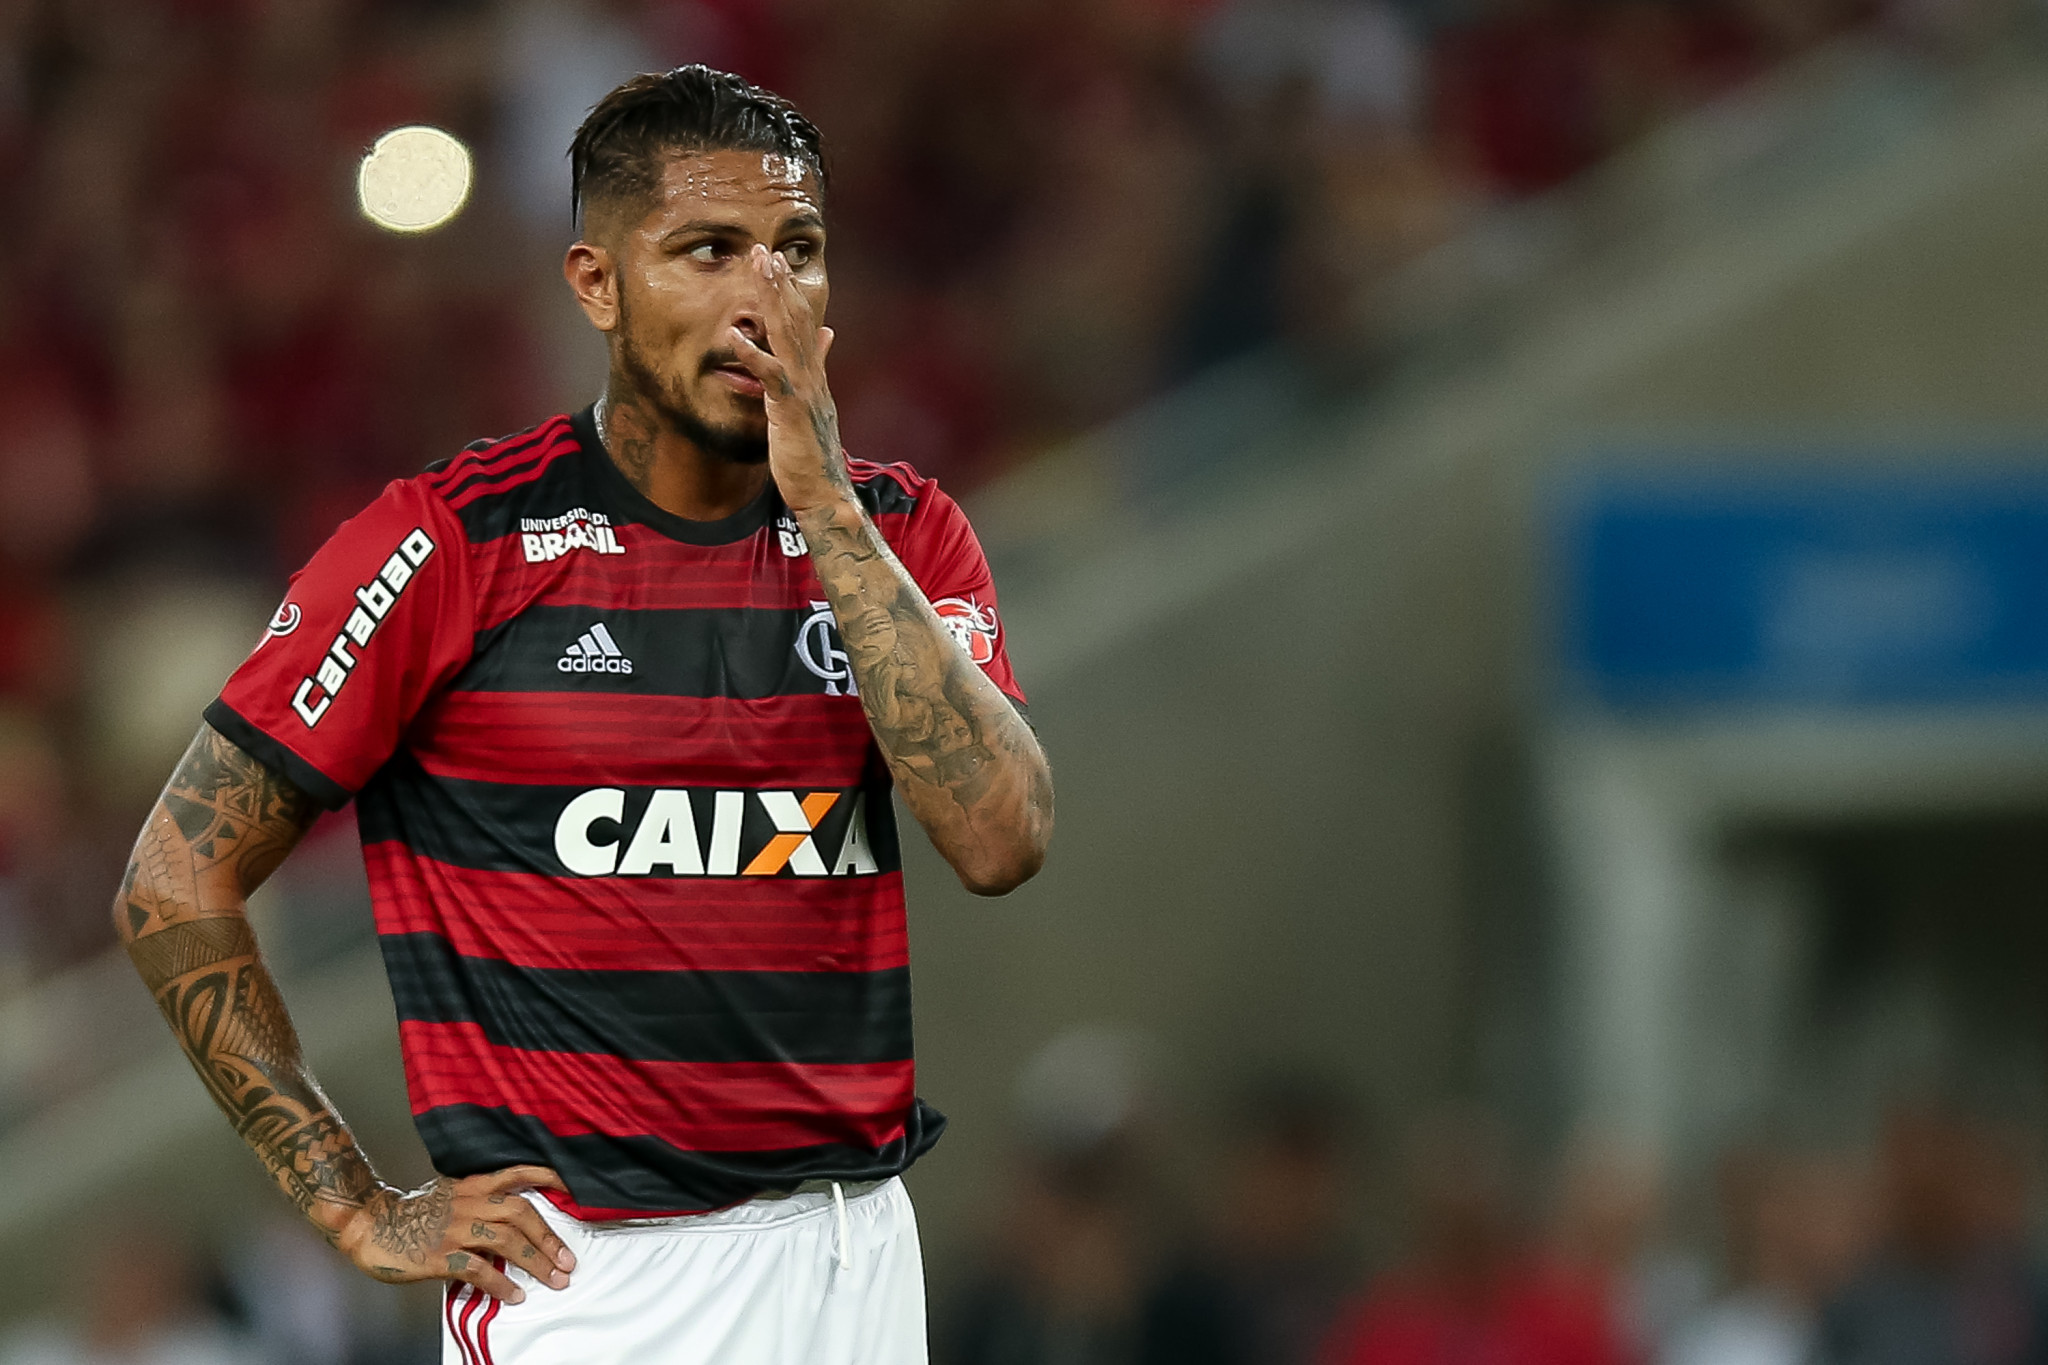 Paolo Guerrero thought he had made his footballing comeback when he played for Brazilian side Flamengo last week ©Getty Images